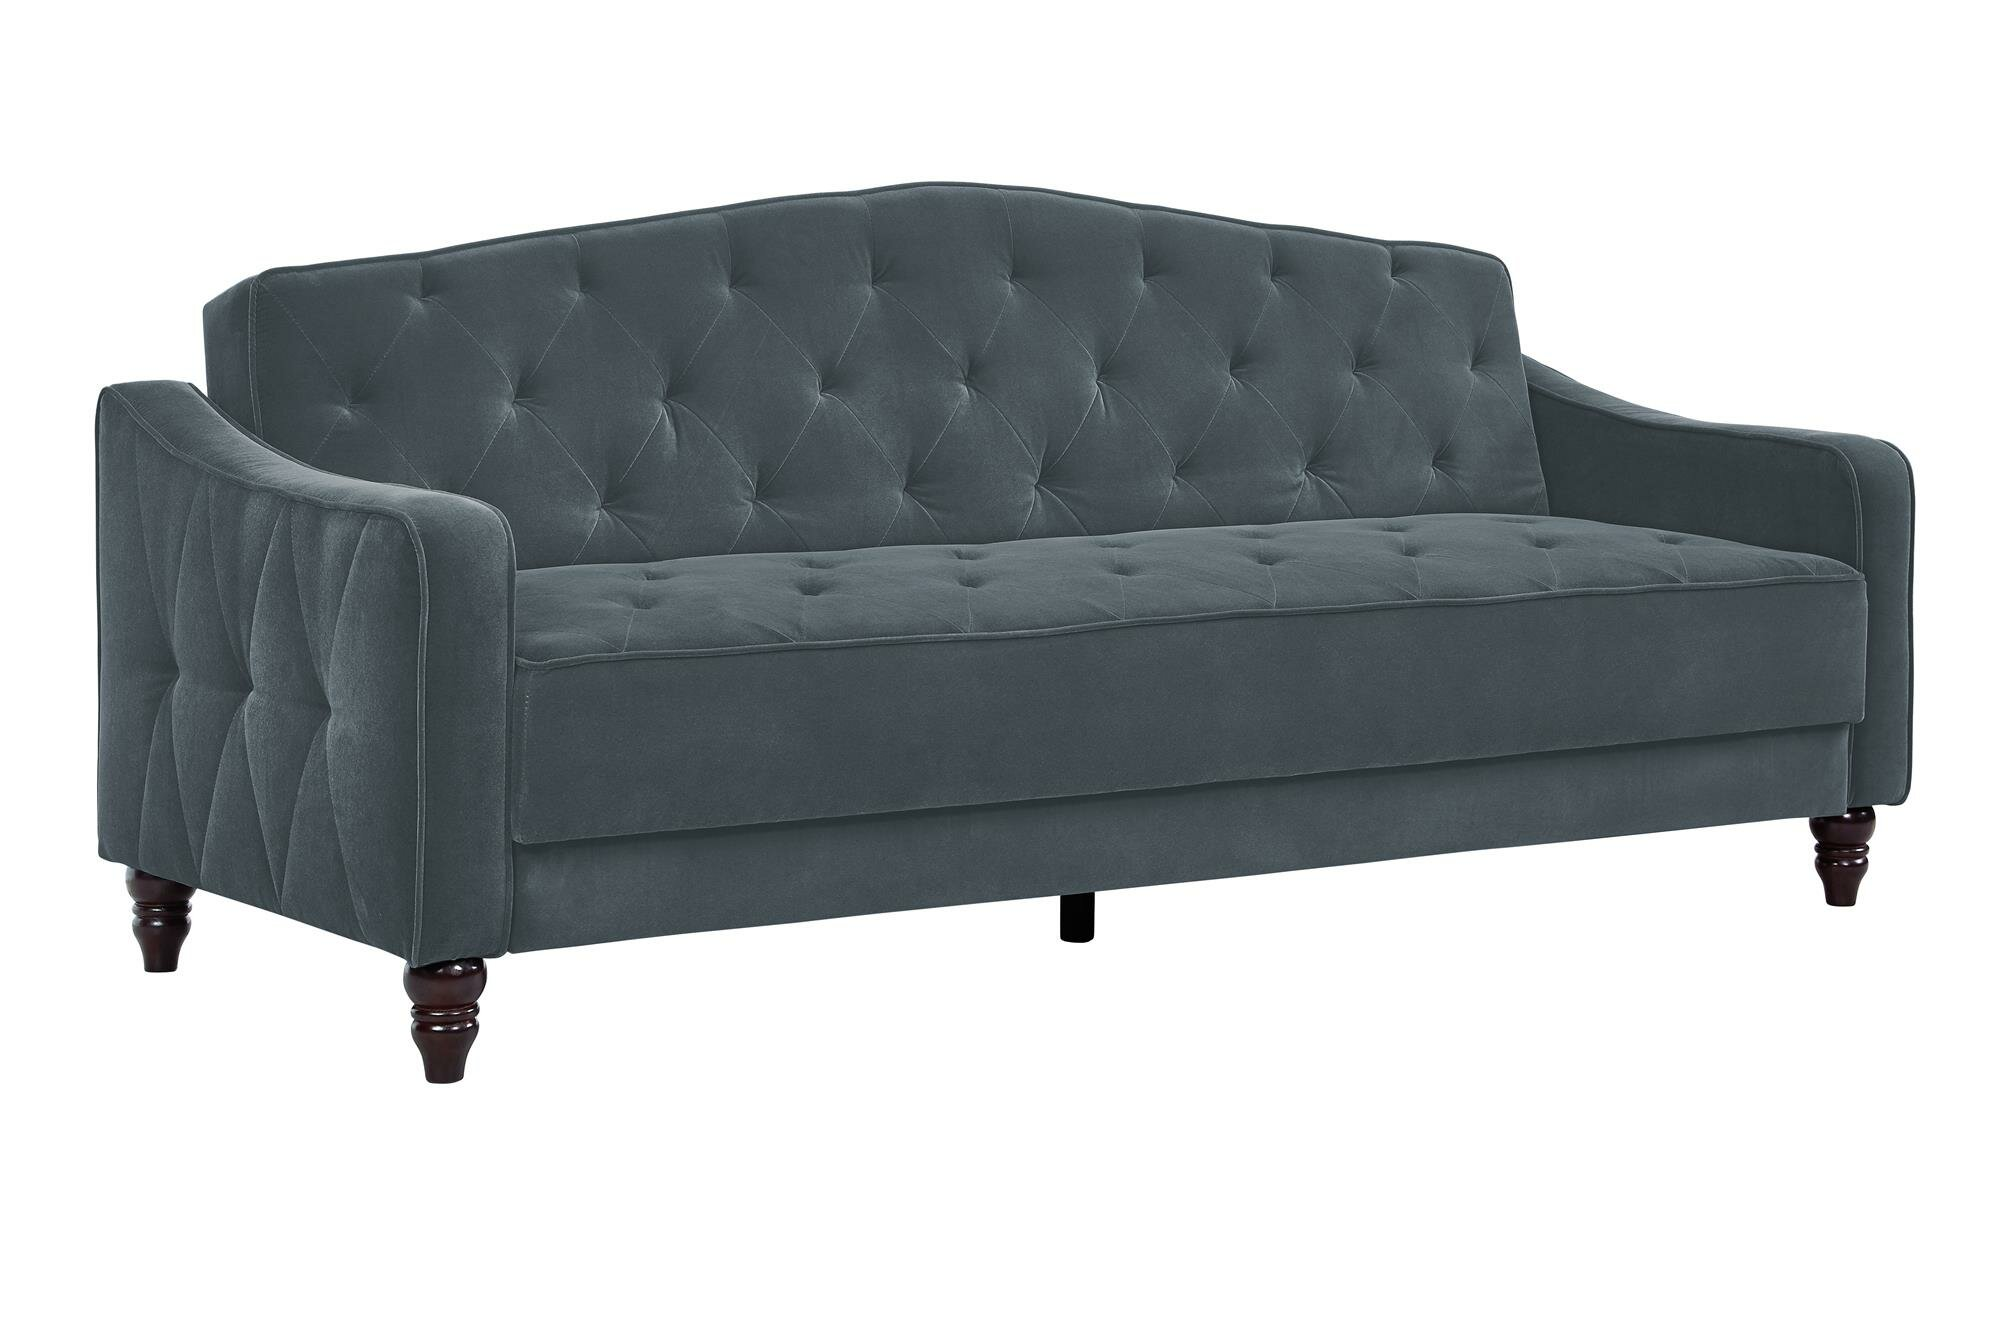 Pleasant Vintage Tufted Convertible Sofa Gamerscity Chair Design For Home Gamerscityorg